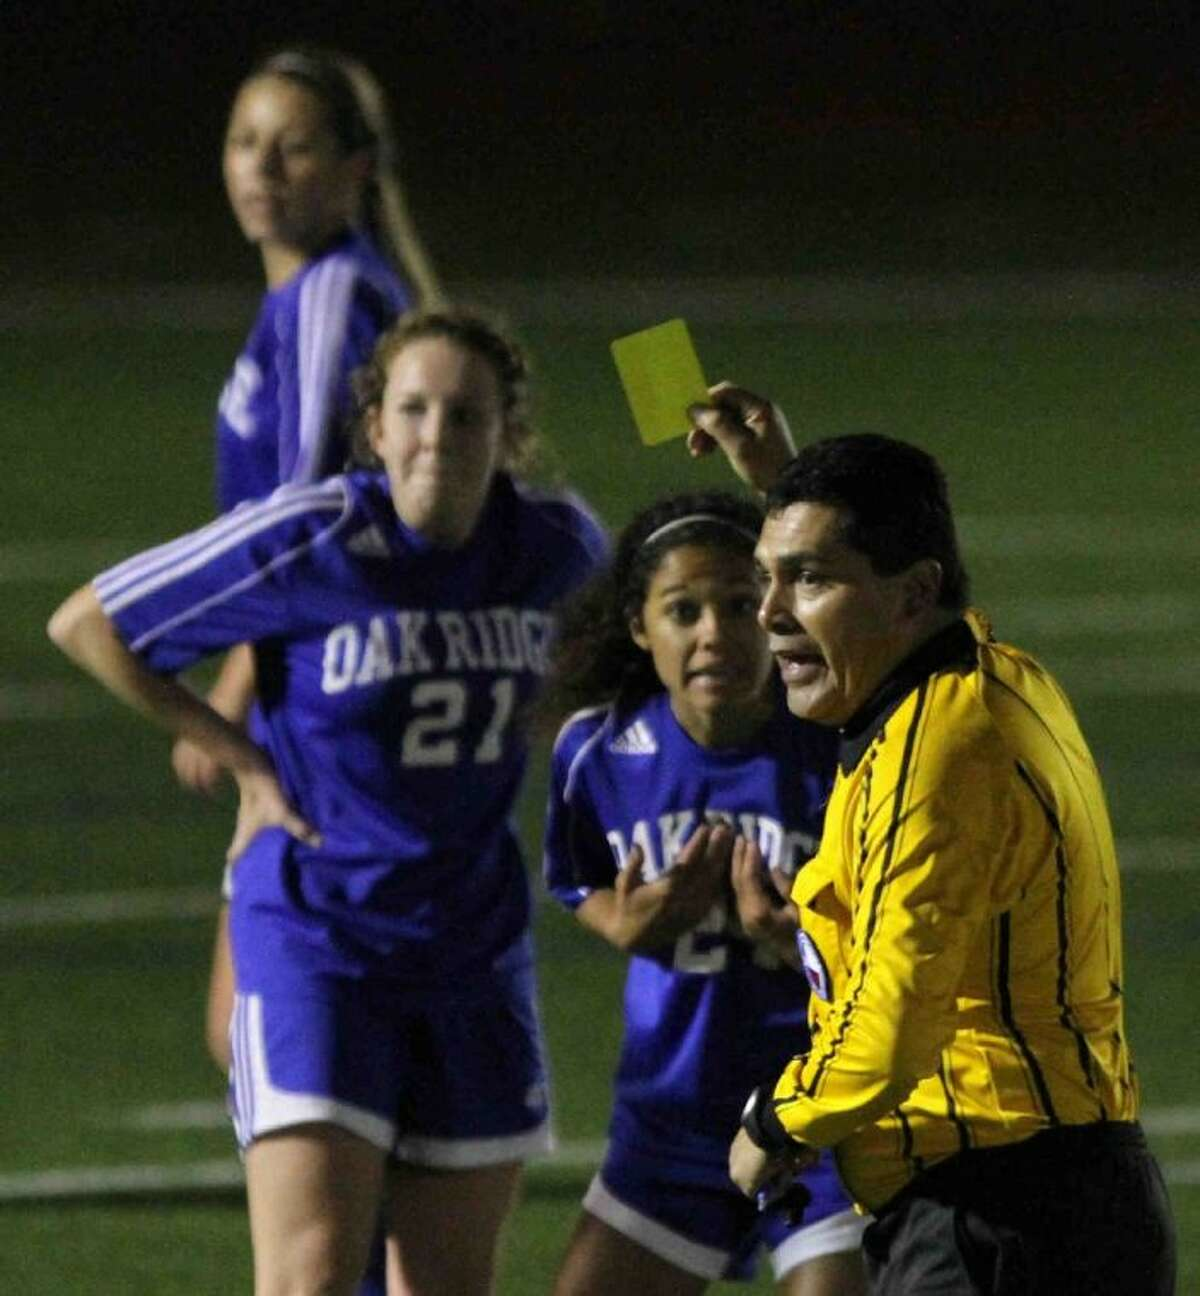 Oak Ridge forward Kamri Brown reacts after getting a yellow card Thursday during the I-10 Shootout at Mayde Creek High School.